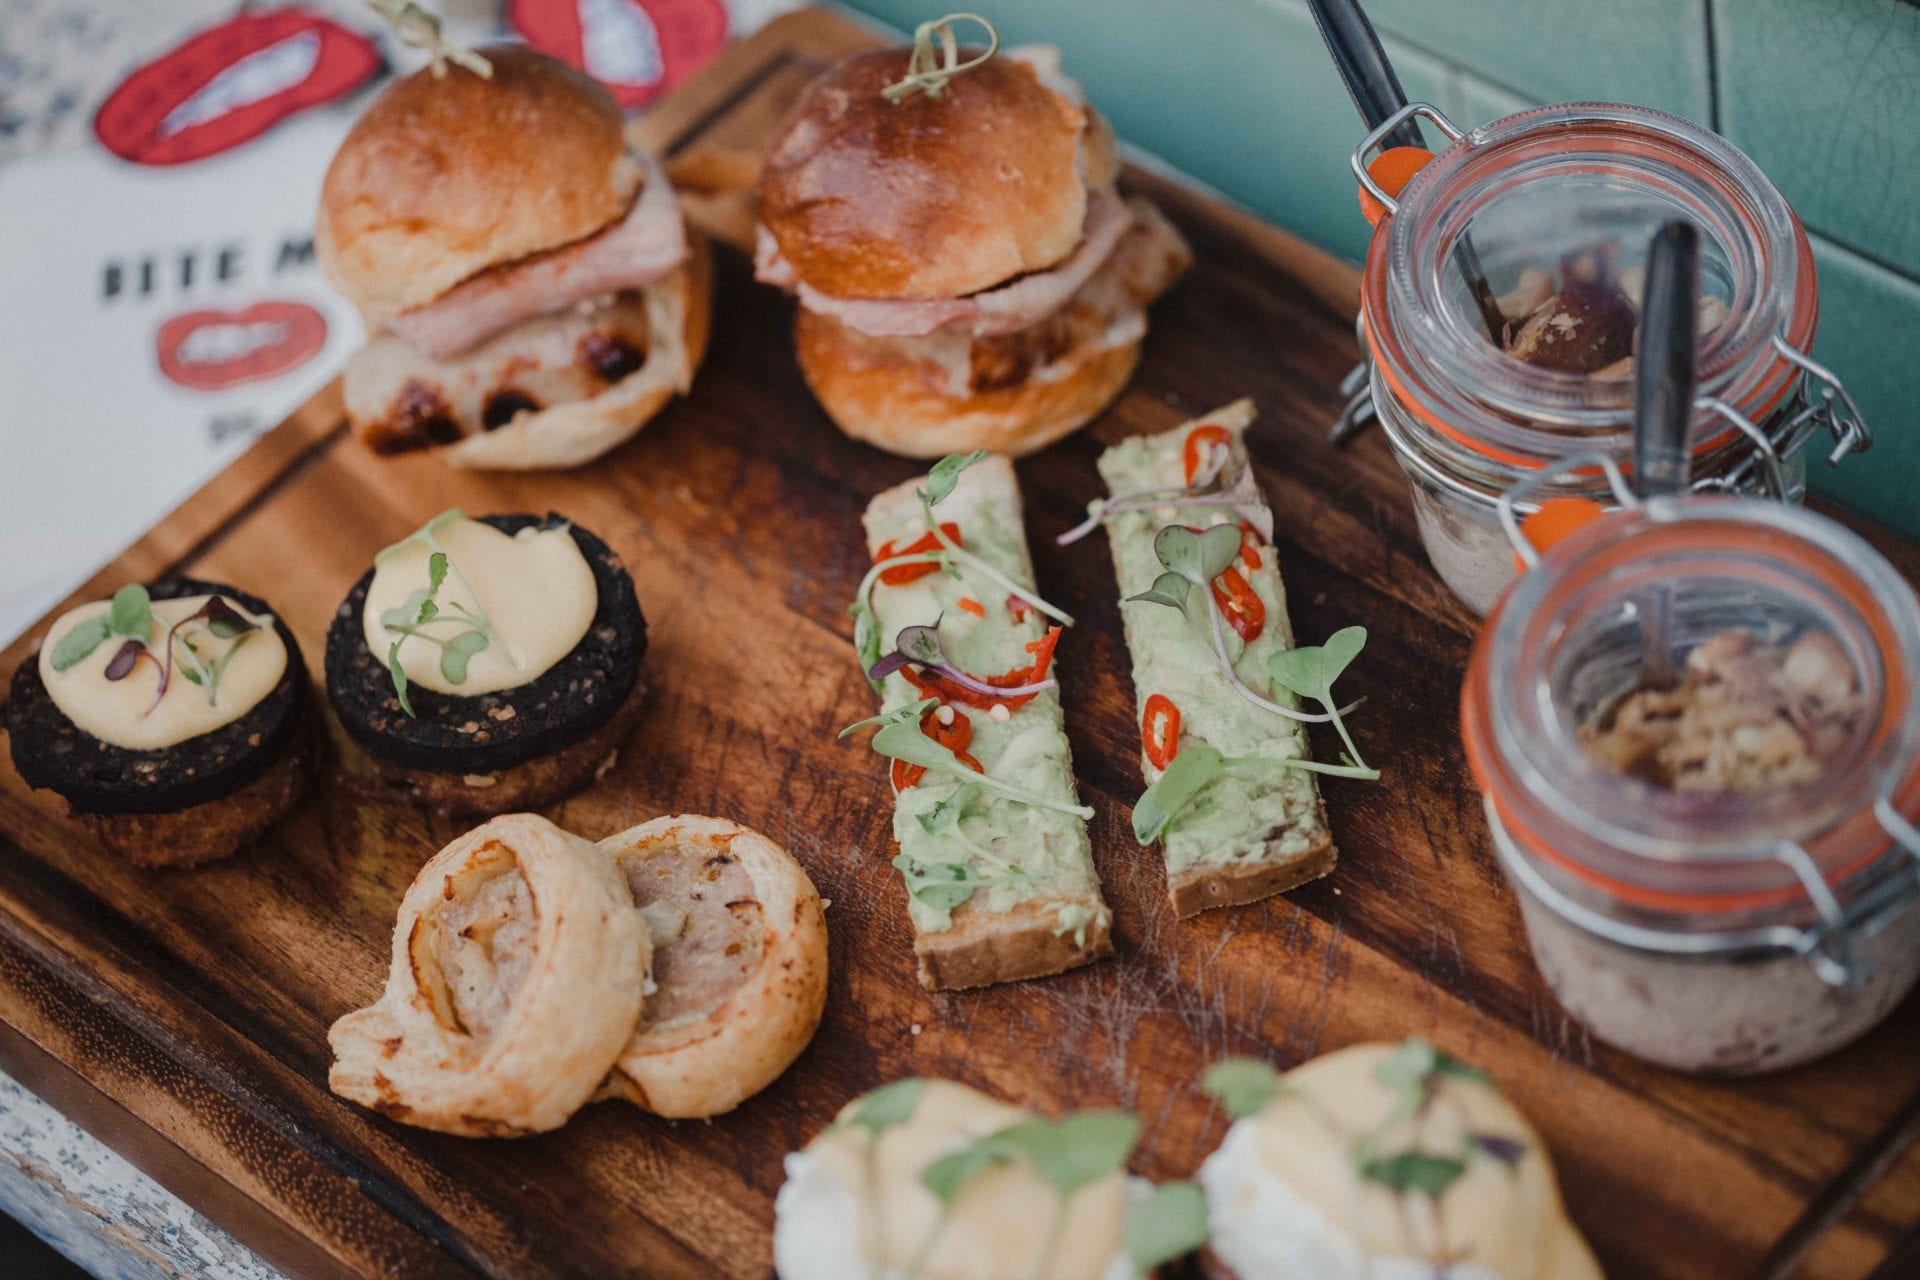 The full brunch menu can be found at madeinbelfastni.com